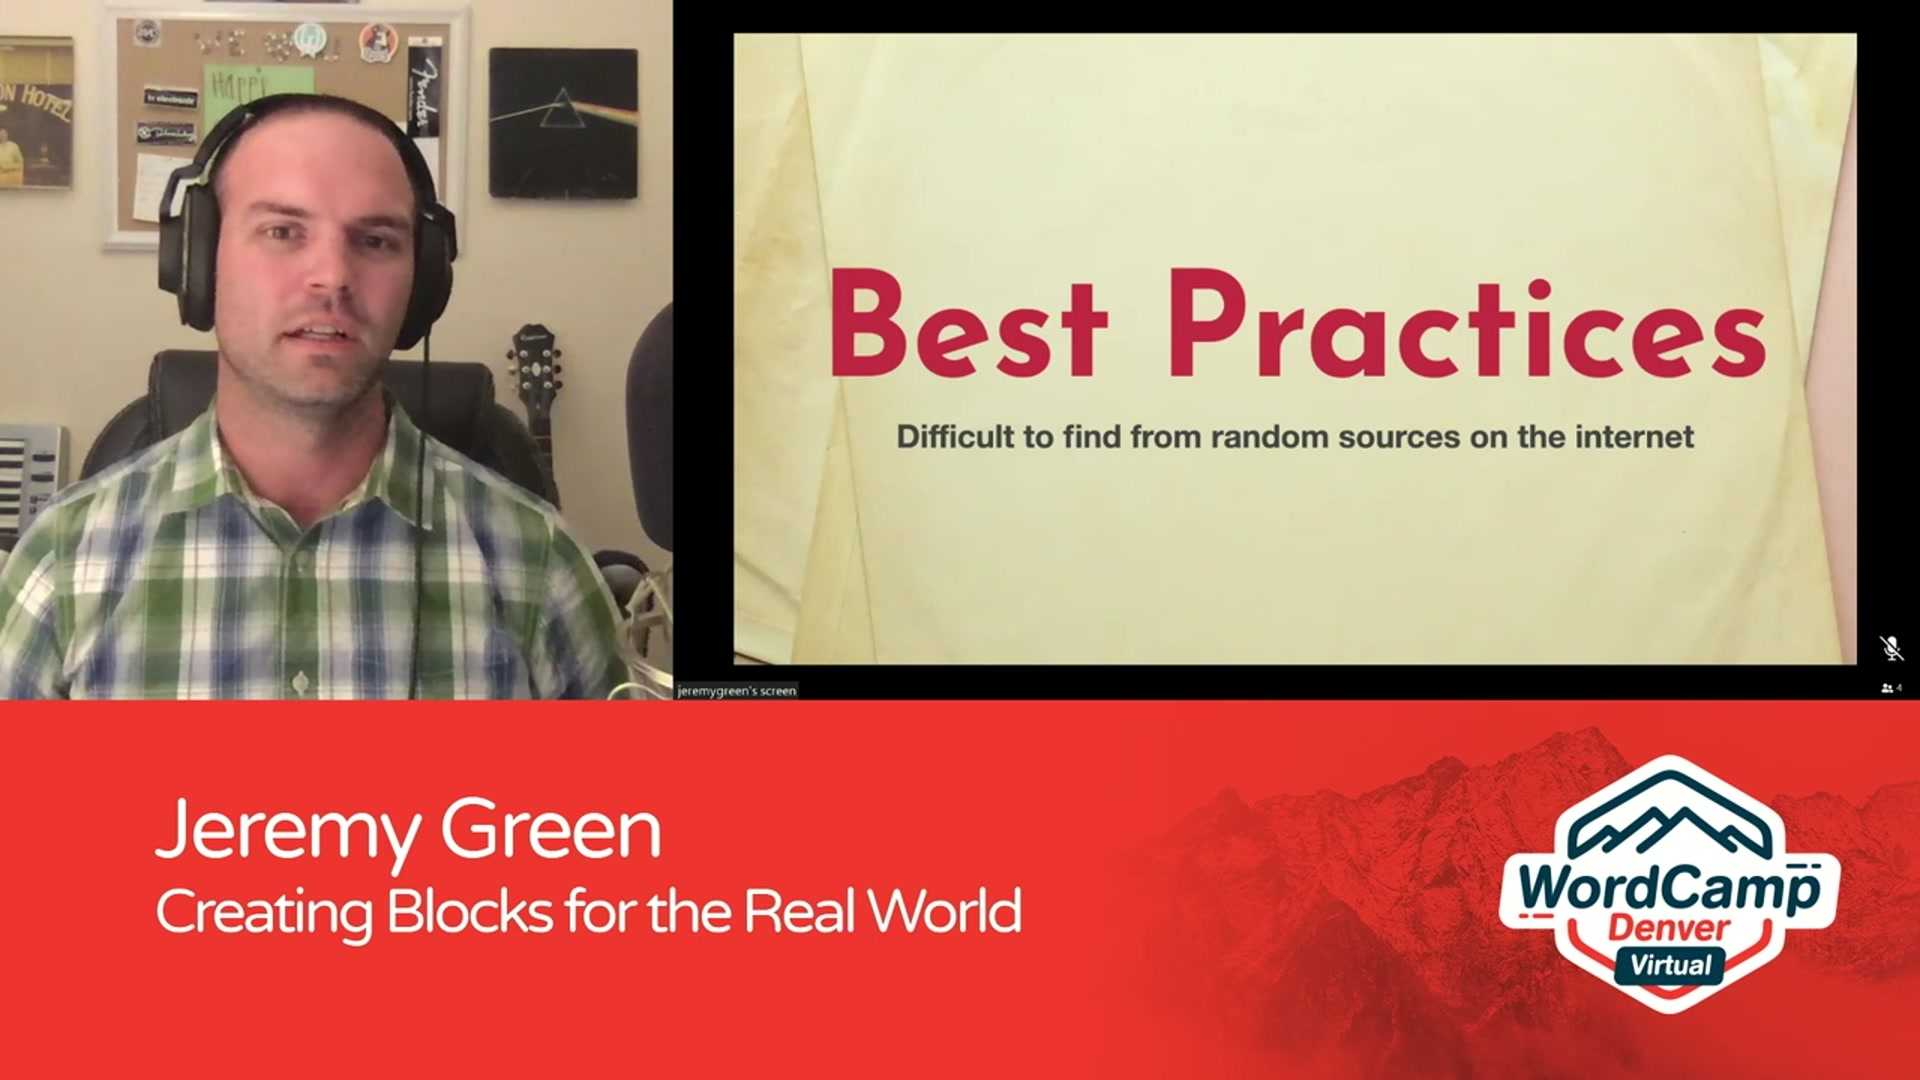 Jeremy Green: Creating Blocks for the Real World